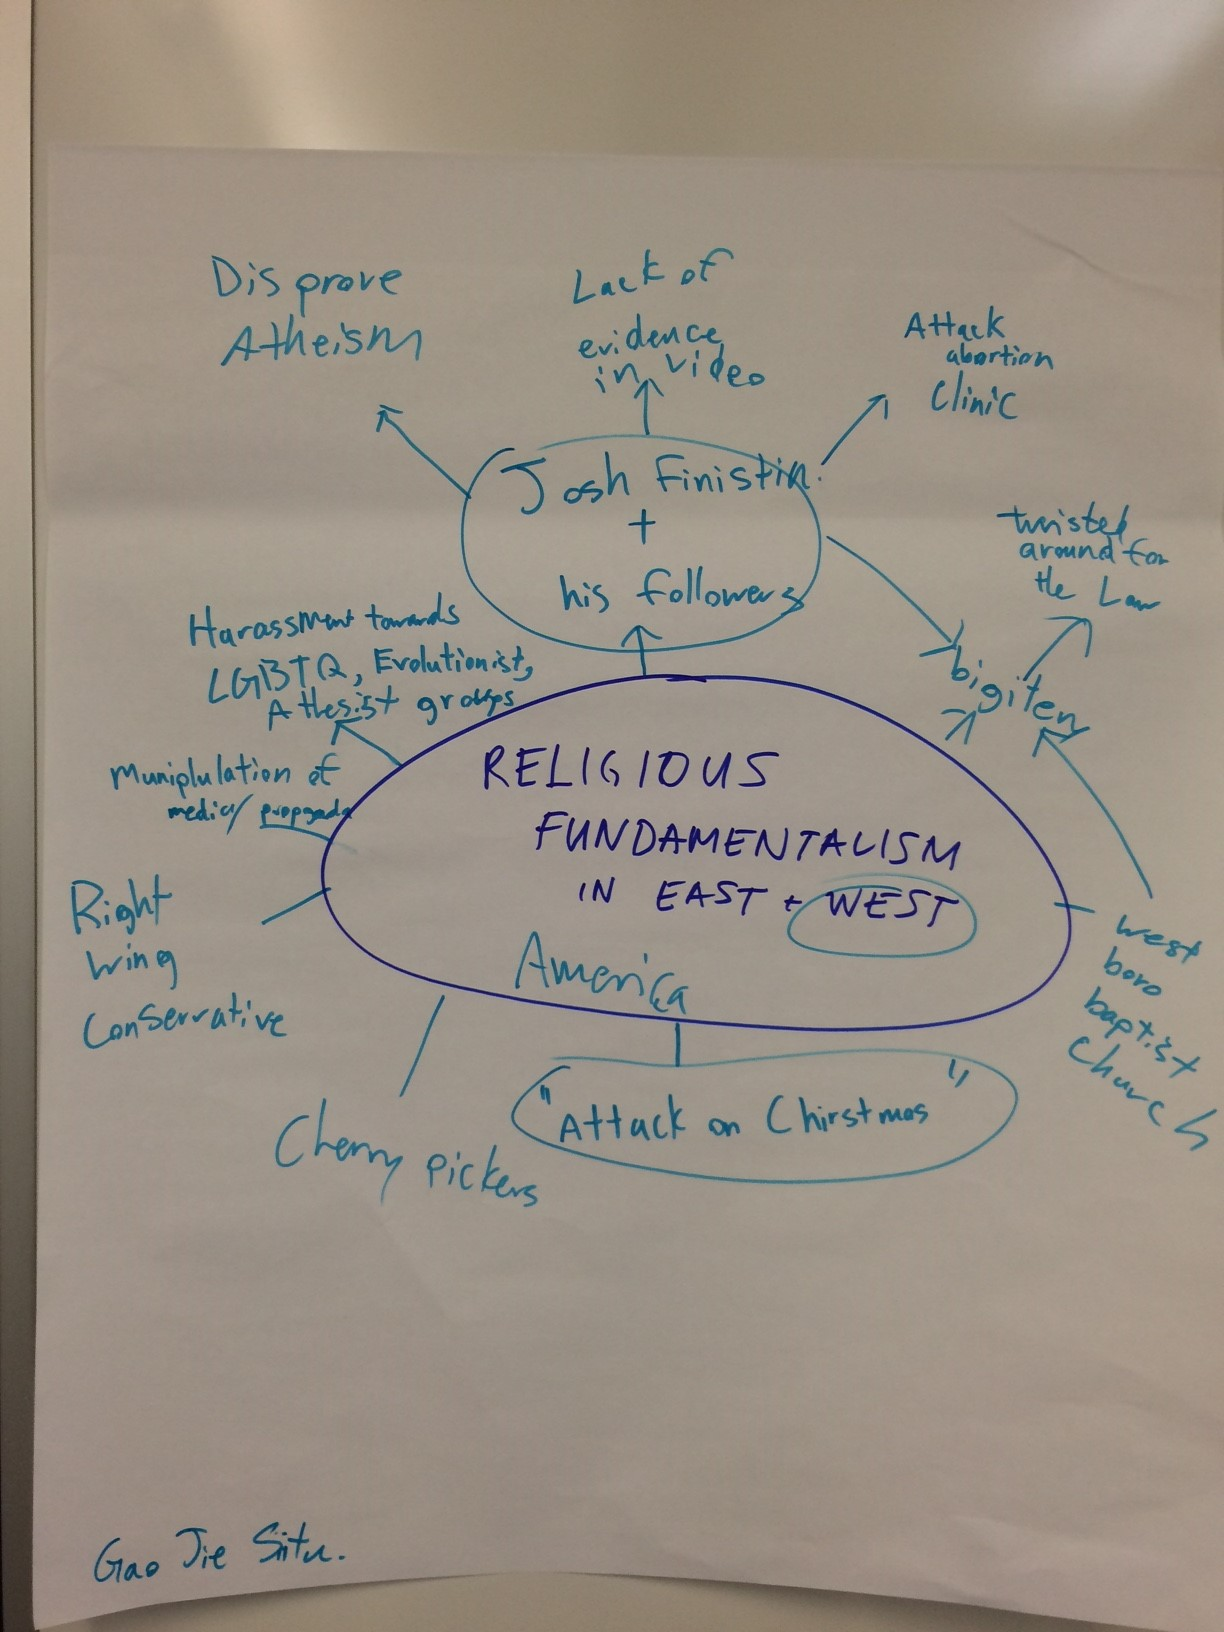 Student Concept Map - Religious Fundamentalism in the Middle East